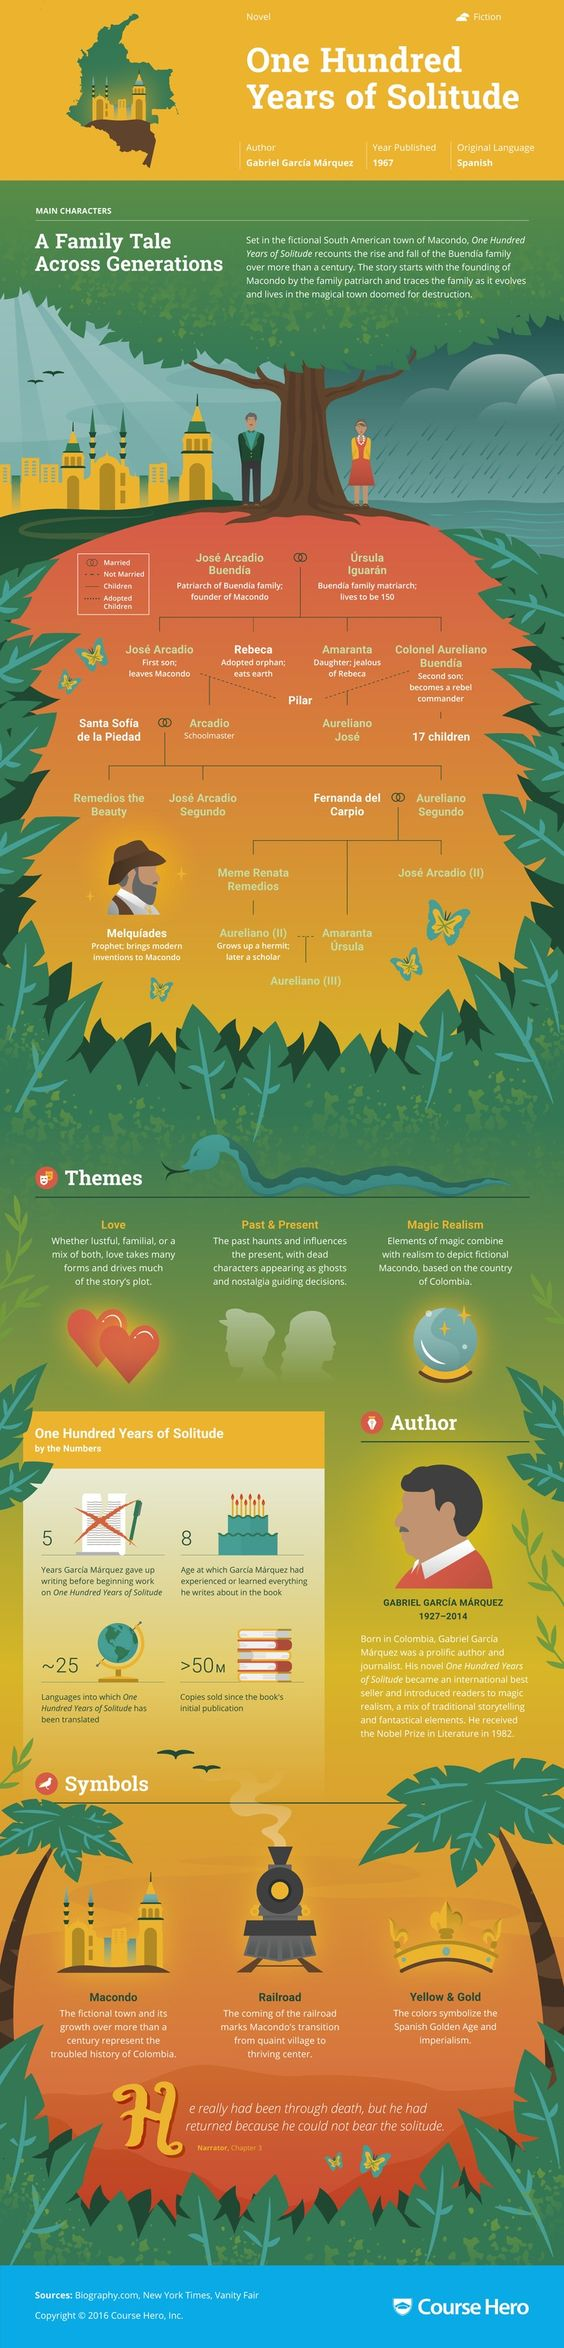 this coursehero infographic on one hundred years of solitude is this coursehero infographic on one hundred years of solitude is both visually stunning and informative